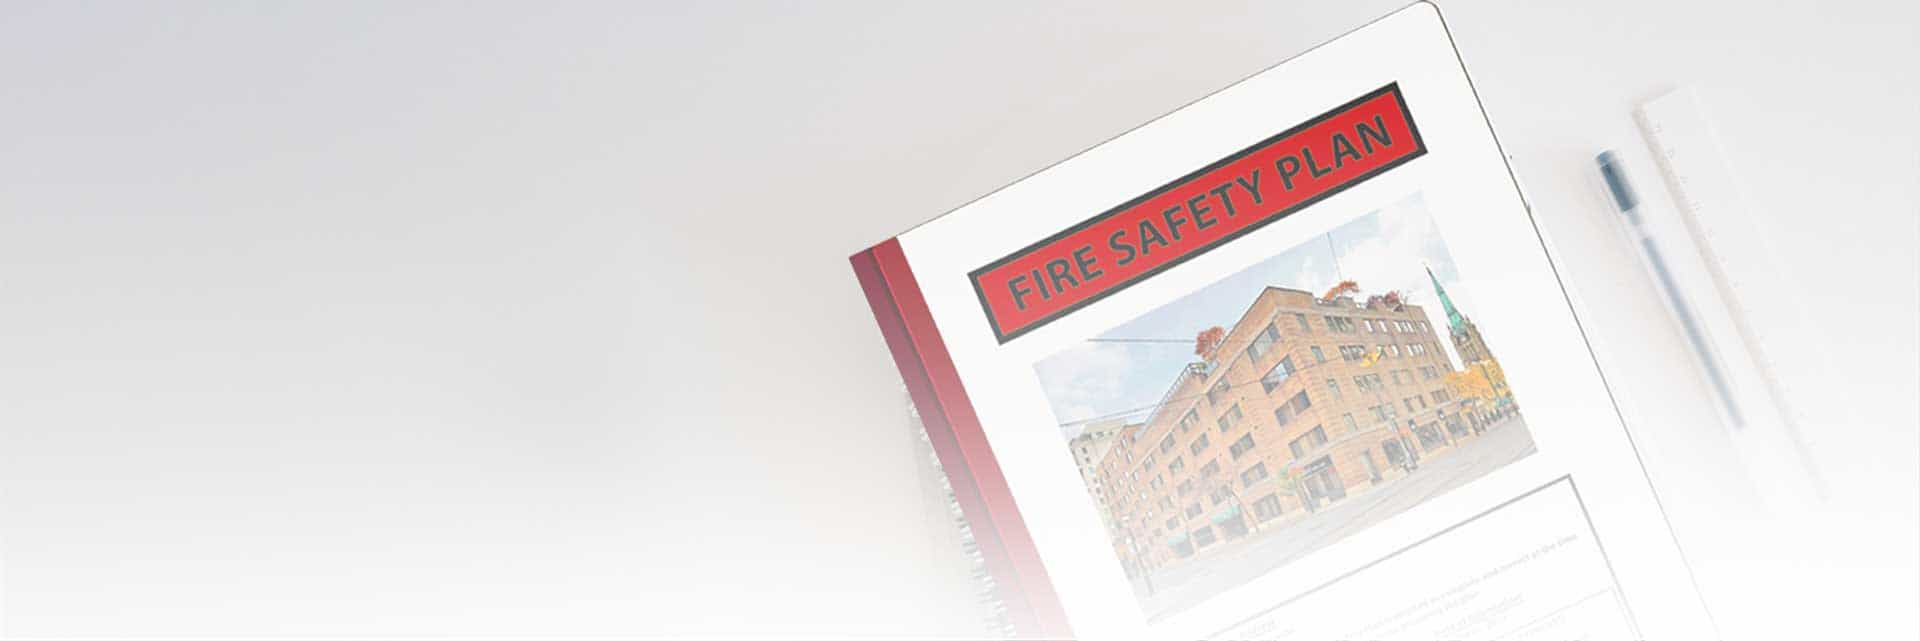 Fire Safety Plan Banner Image. Fire safety plan binder on a white background